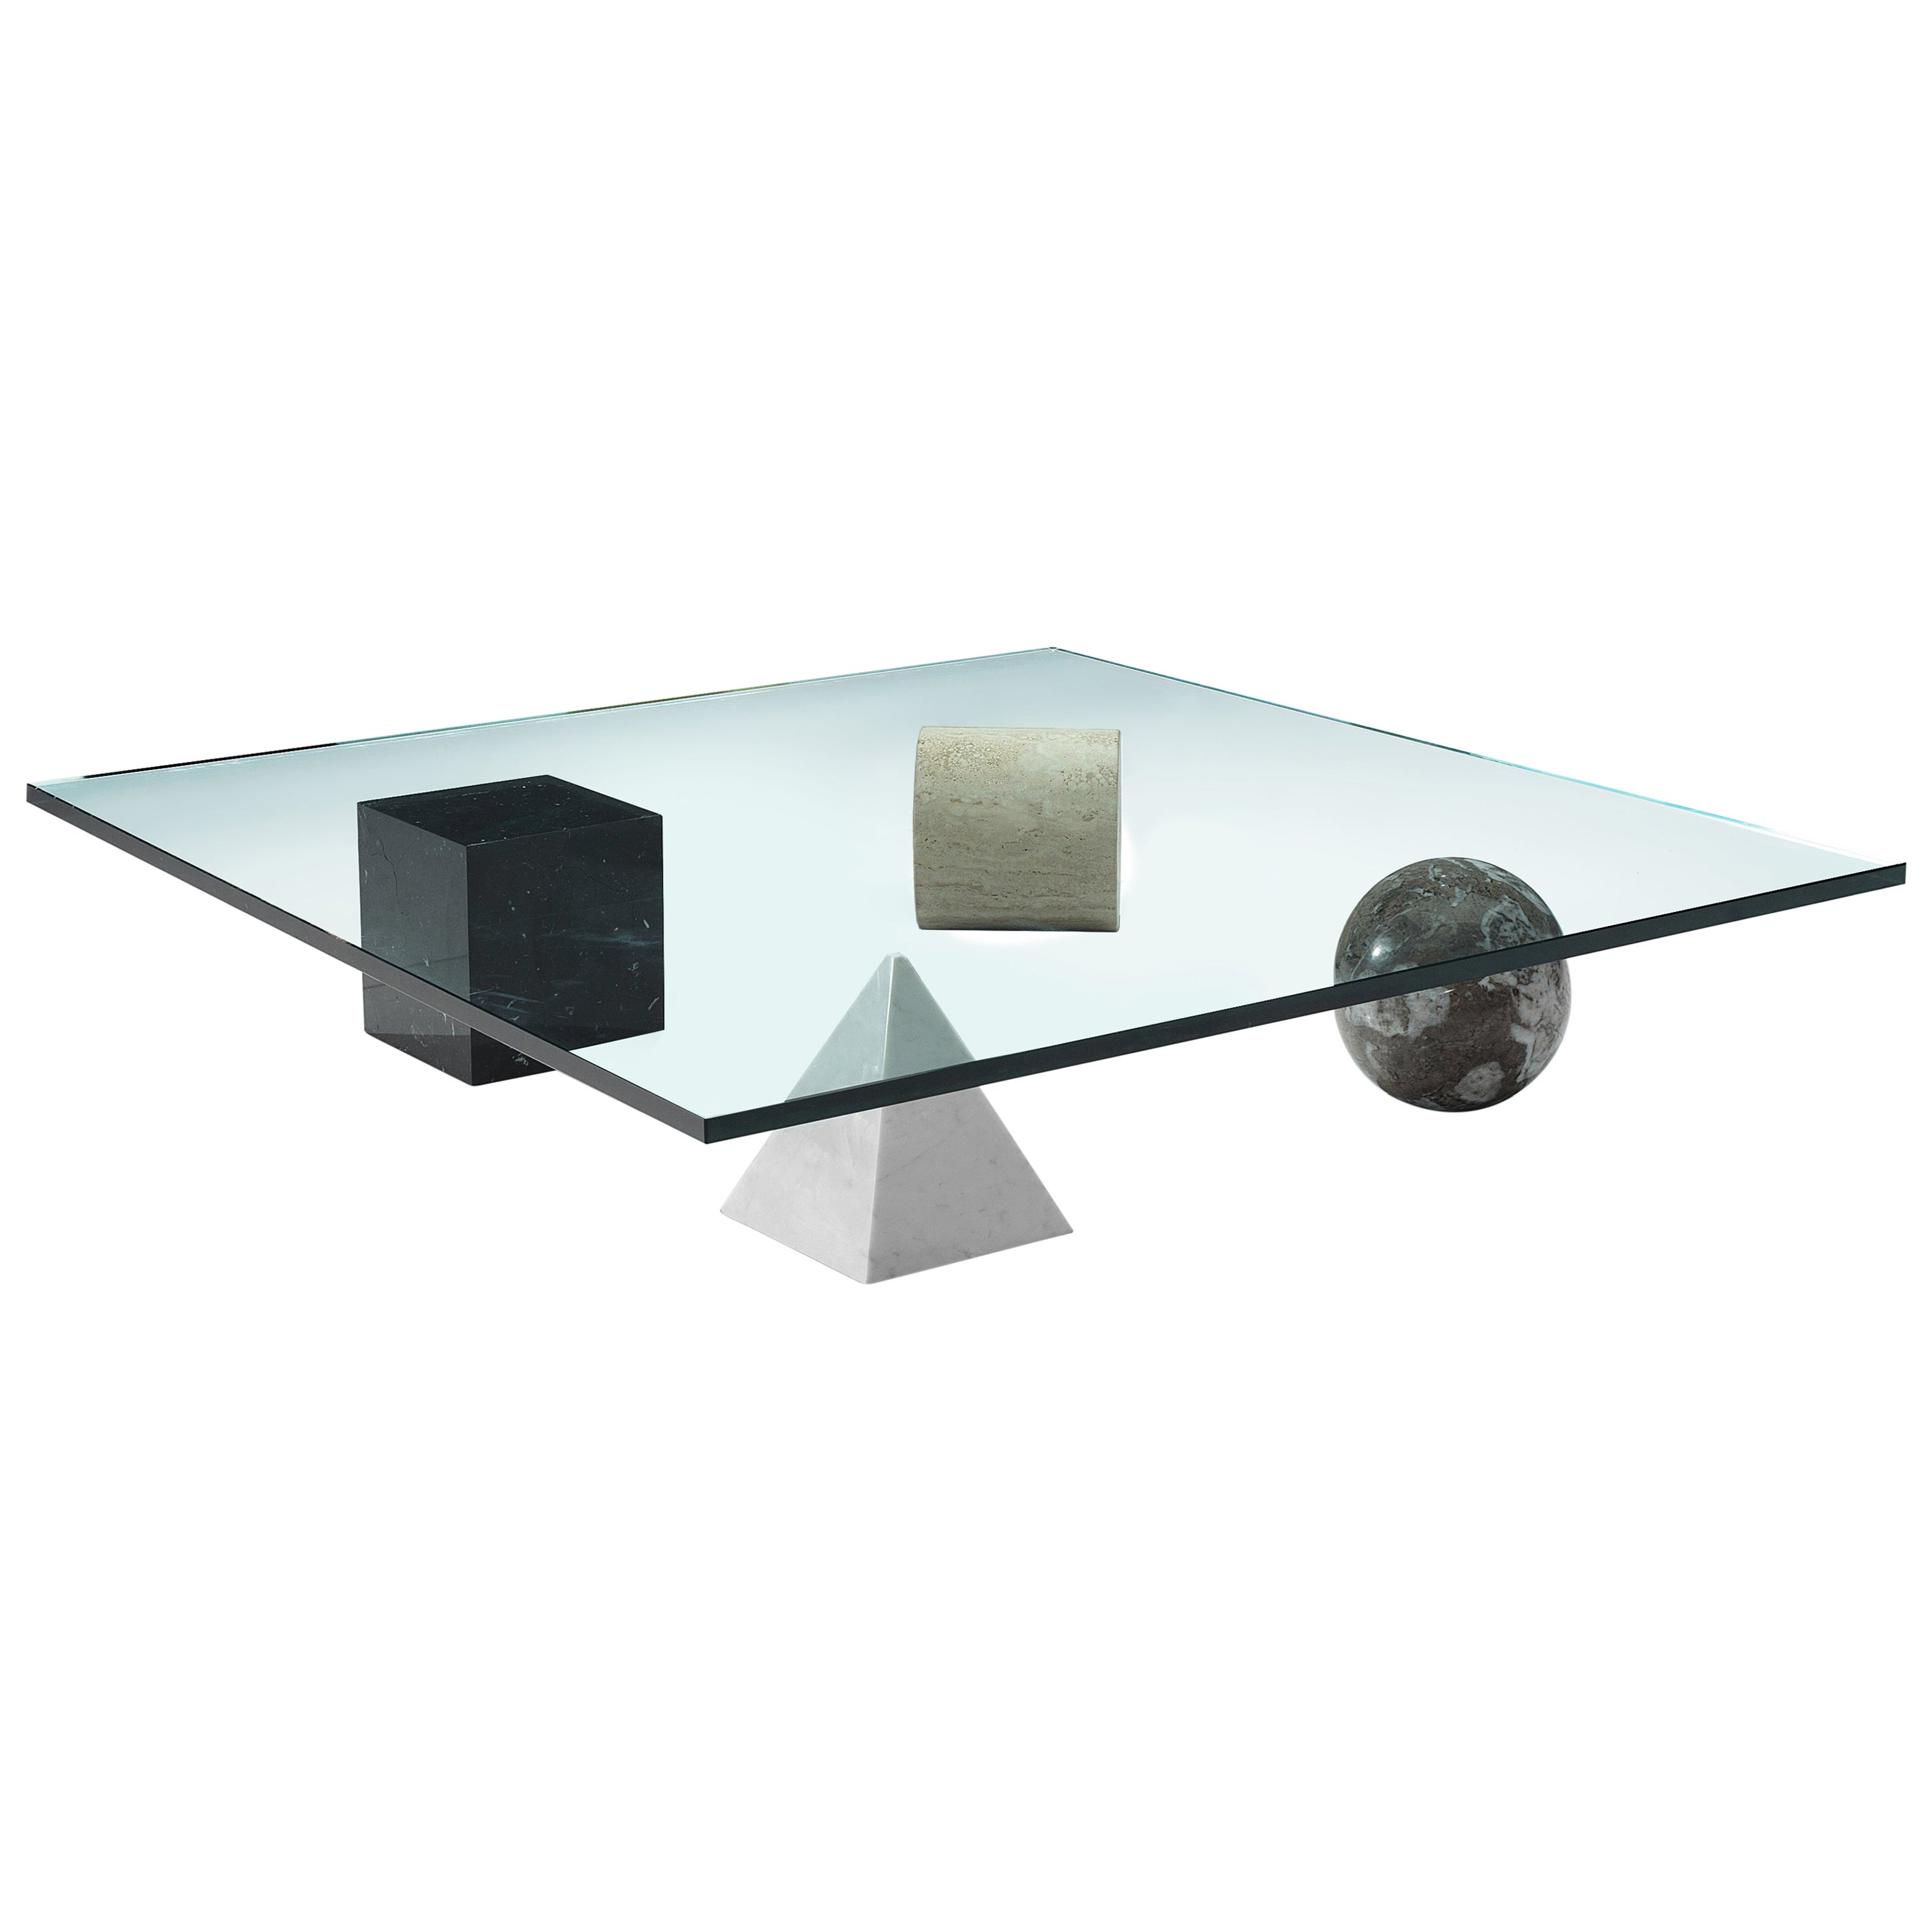 Lella and Massimo Vignelli Marble 'Metaphora' Coffee Table in Marble and Brass